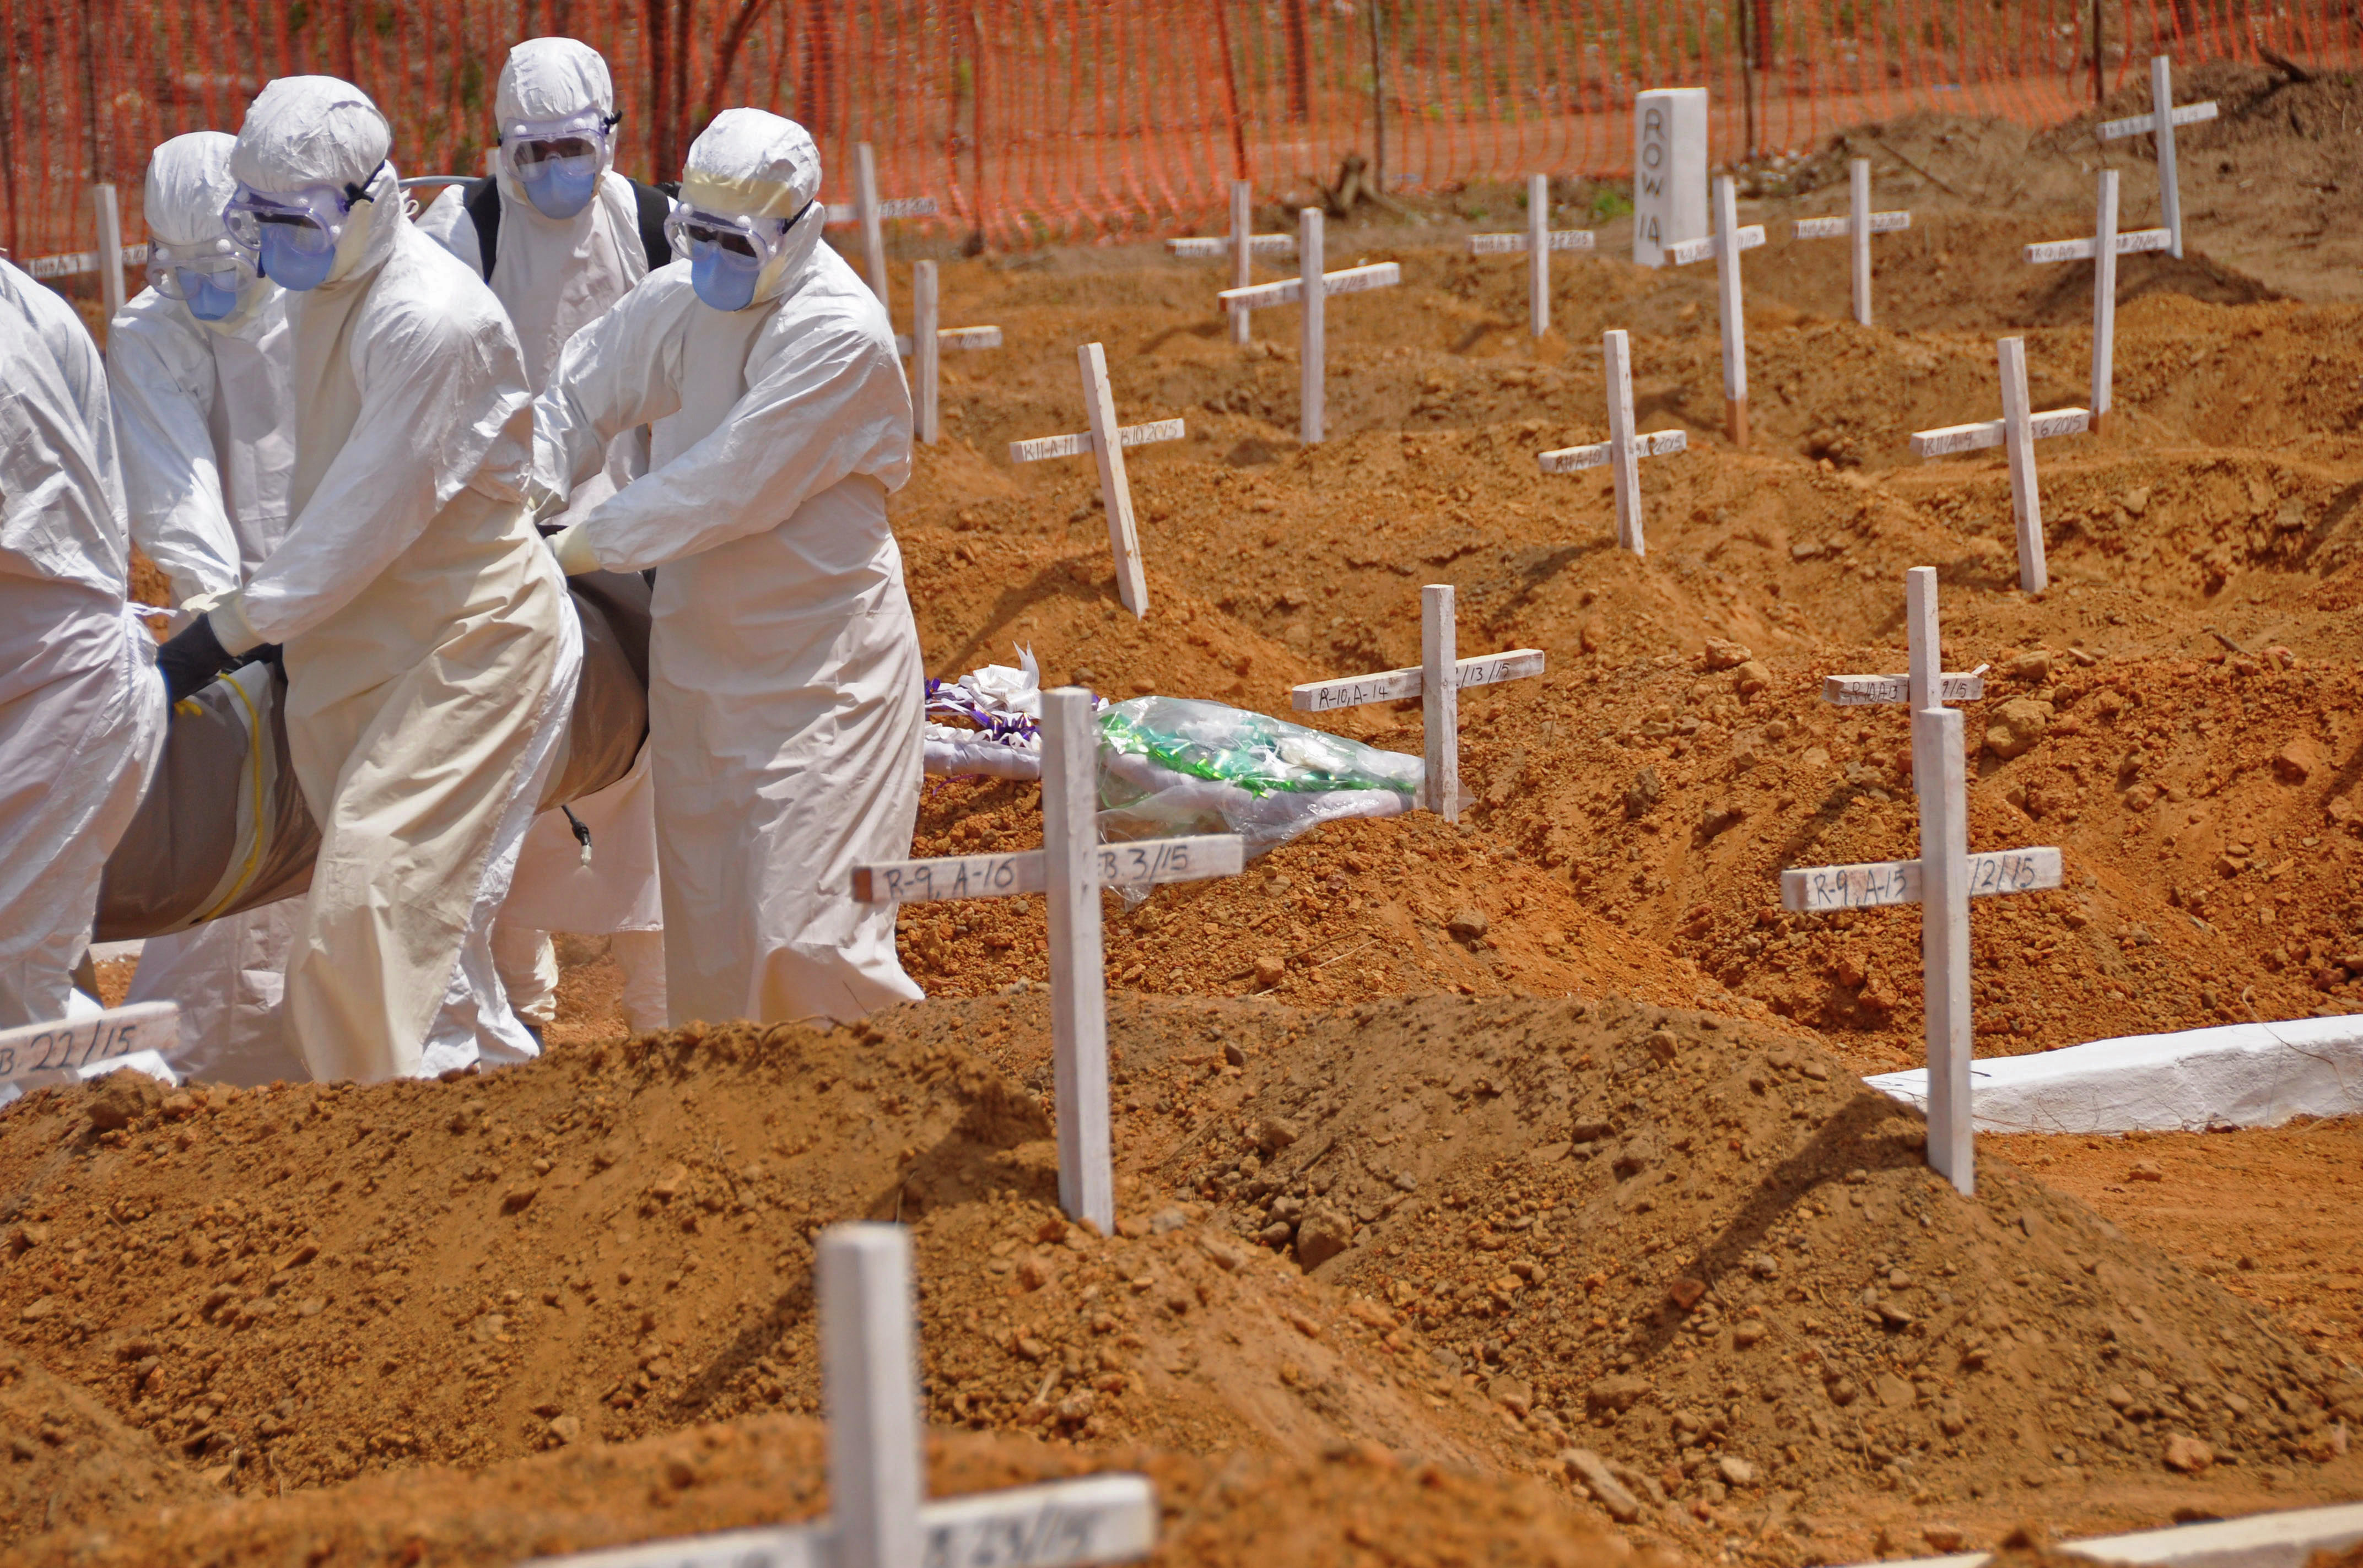 Health workers carry the body, of a person that they suspected died from the Ebola virus at a new graveyard on the outskirts of Monrovia, Liberia, Wednesday, March 11, 2015